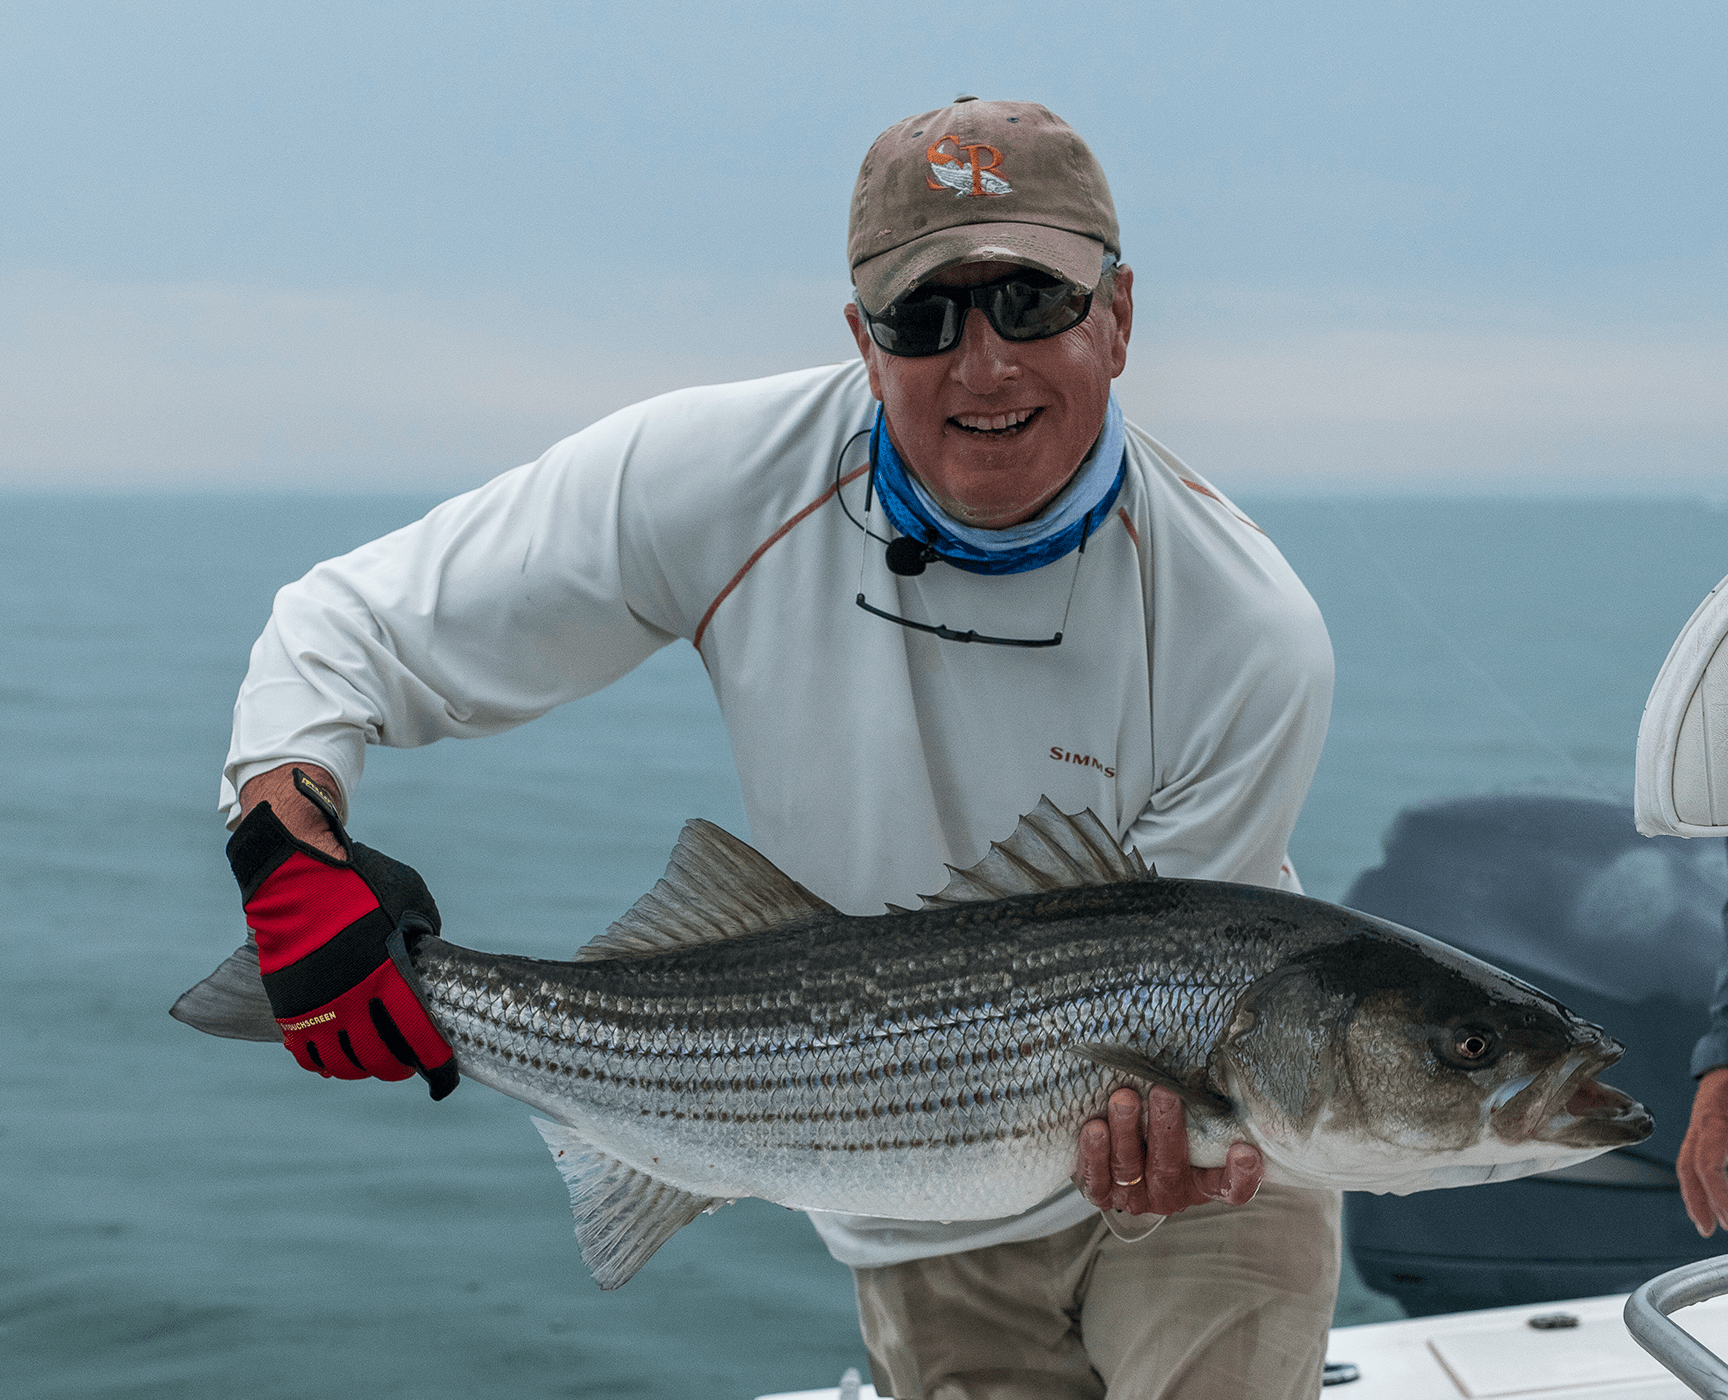 Shoals Fly Fishing Guide Portsmouth NH | Inshore Offshore